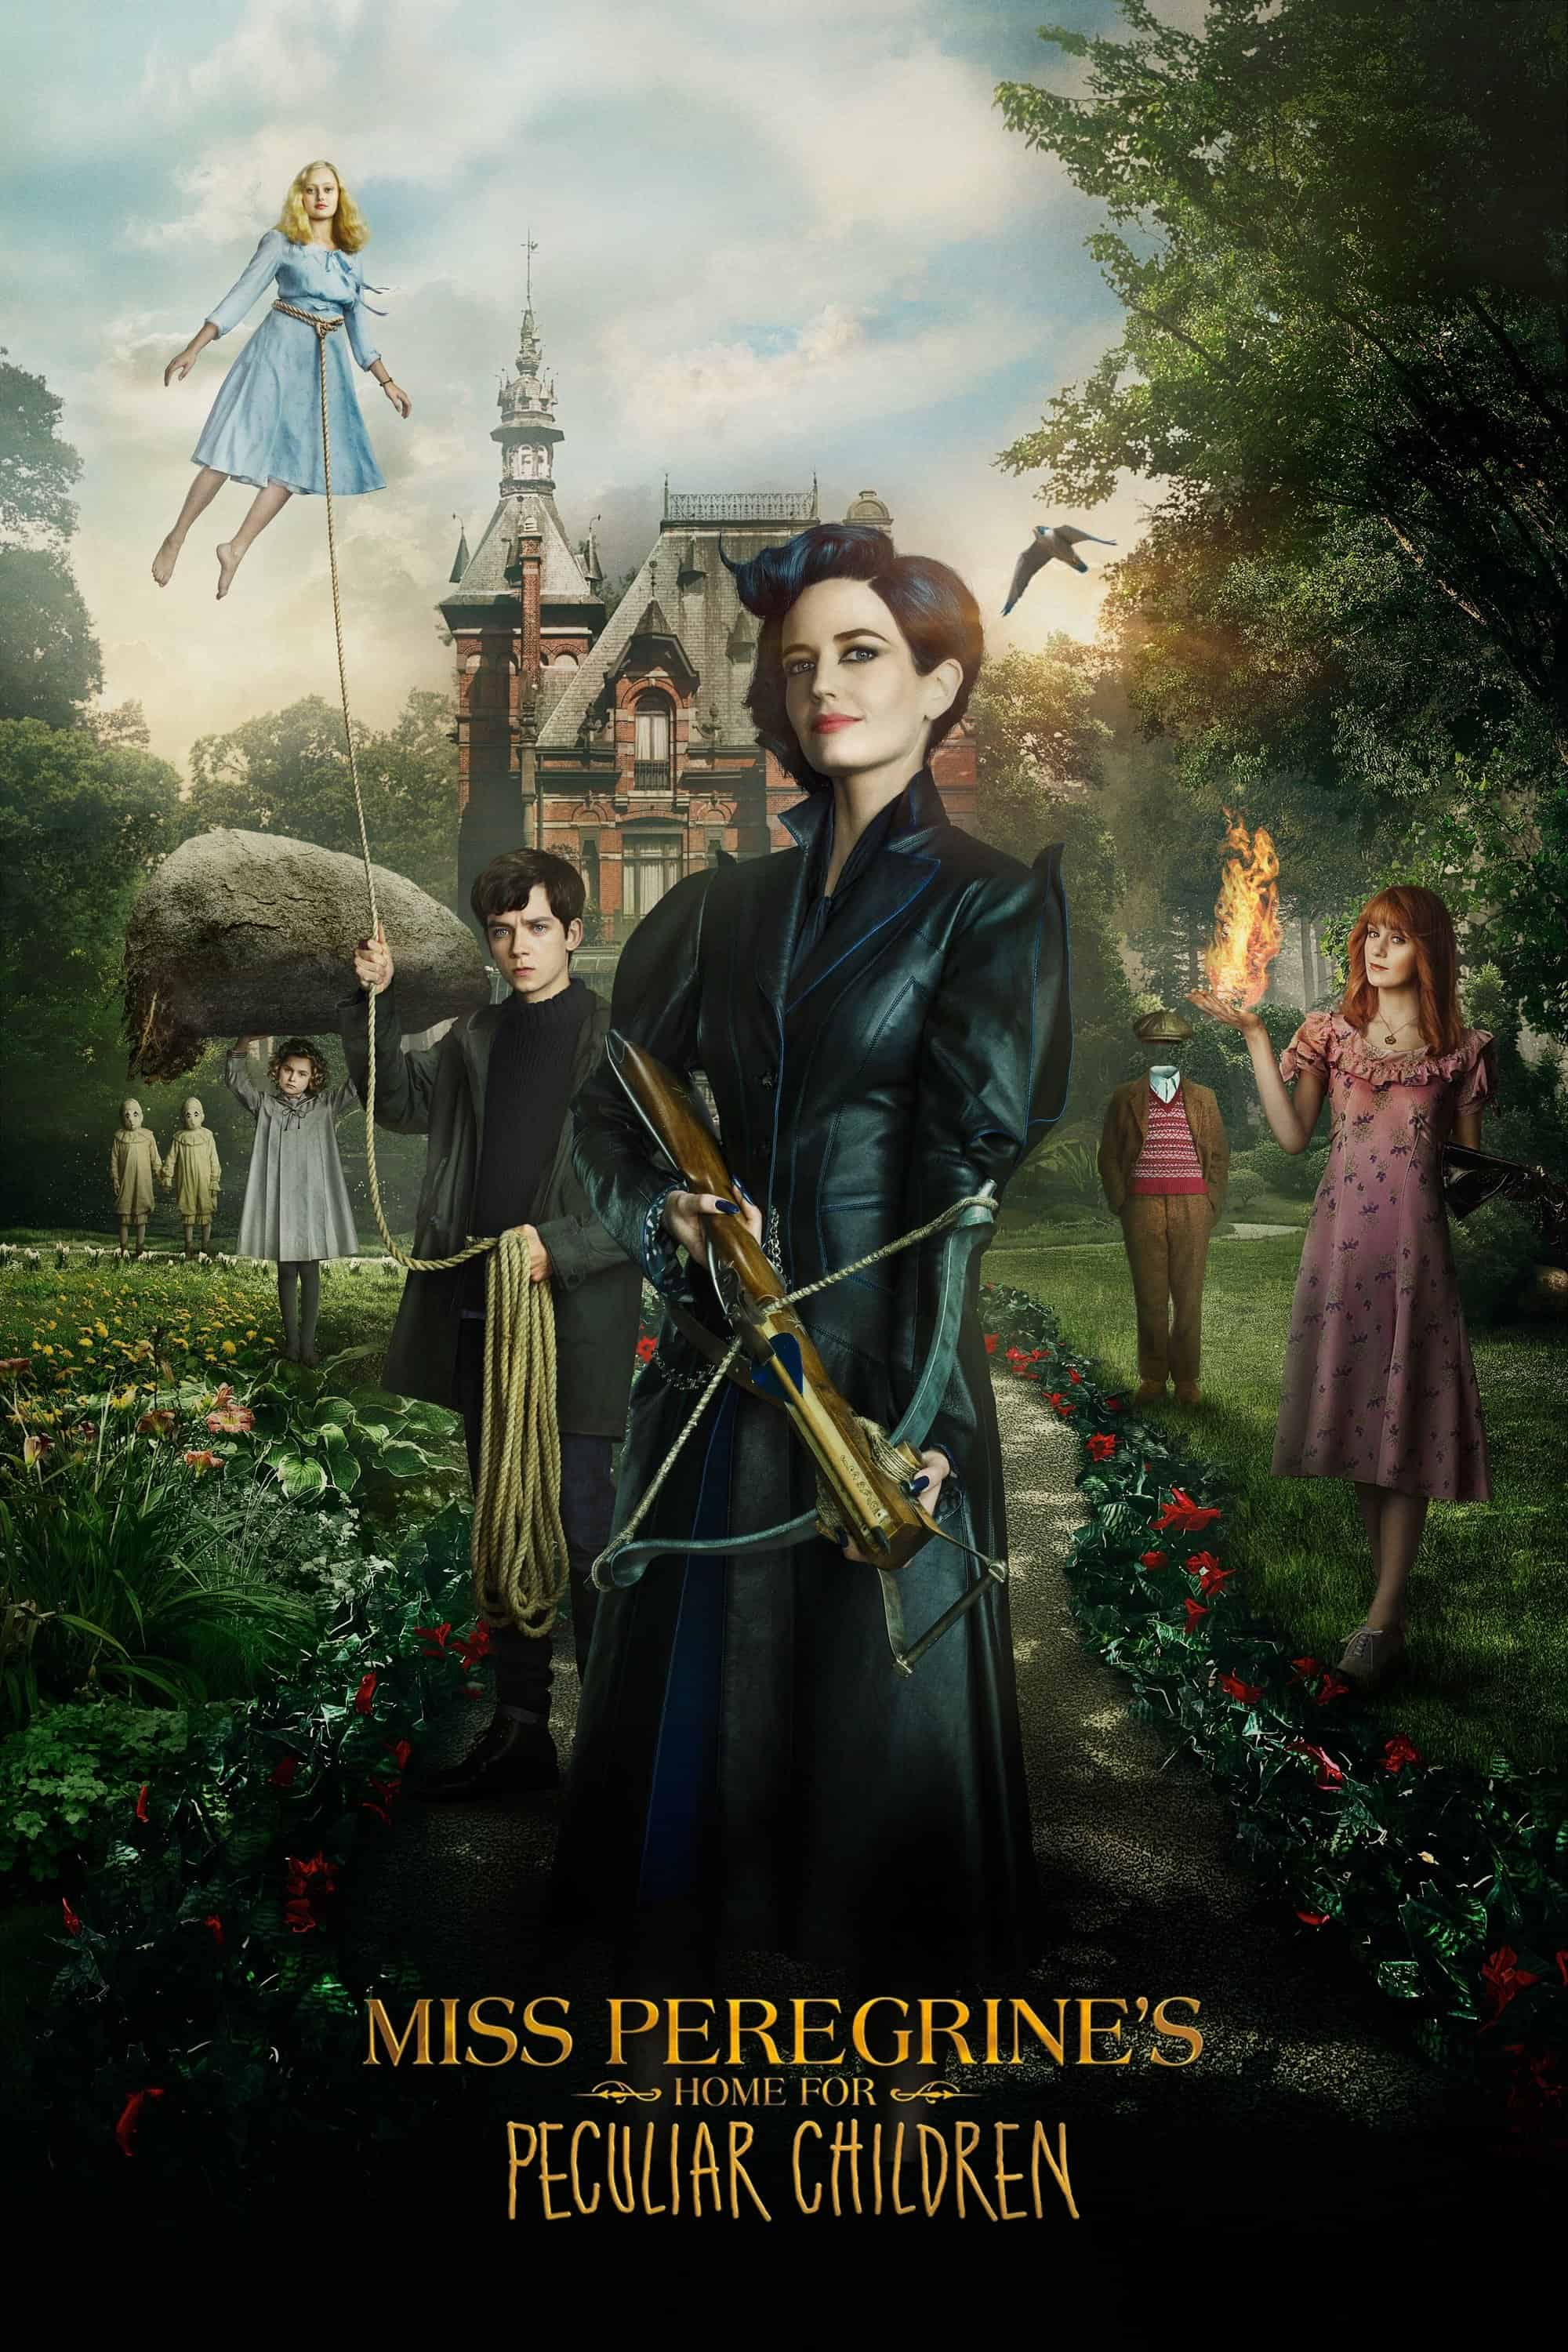 Miss Peregrine's Home for Peculiar Children, 2016